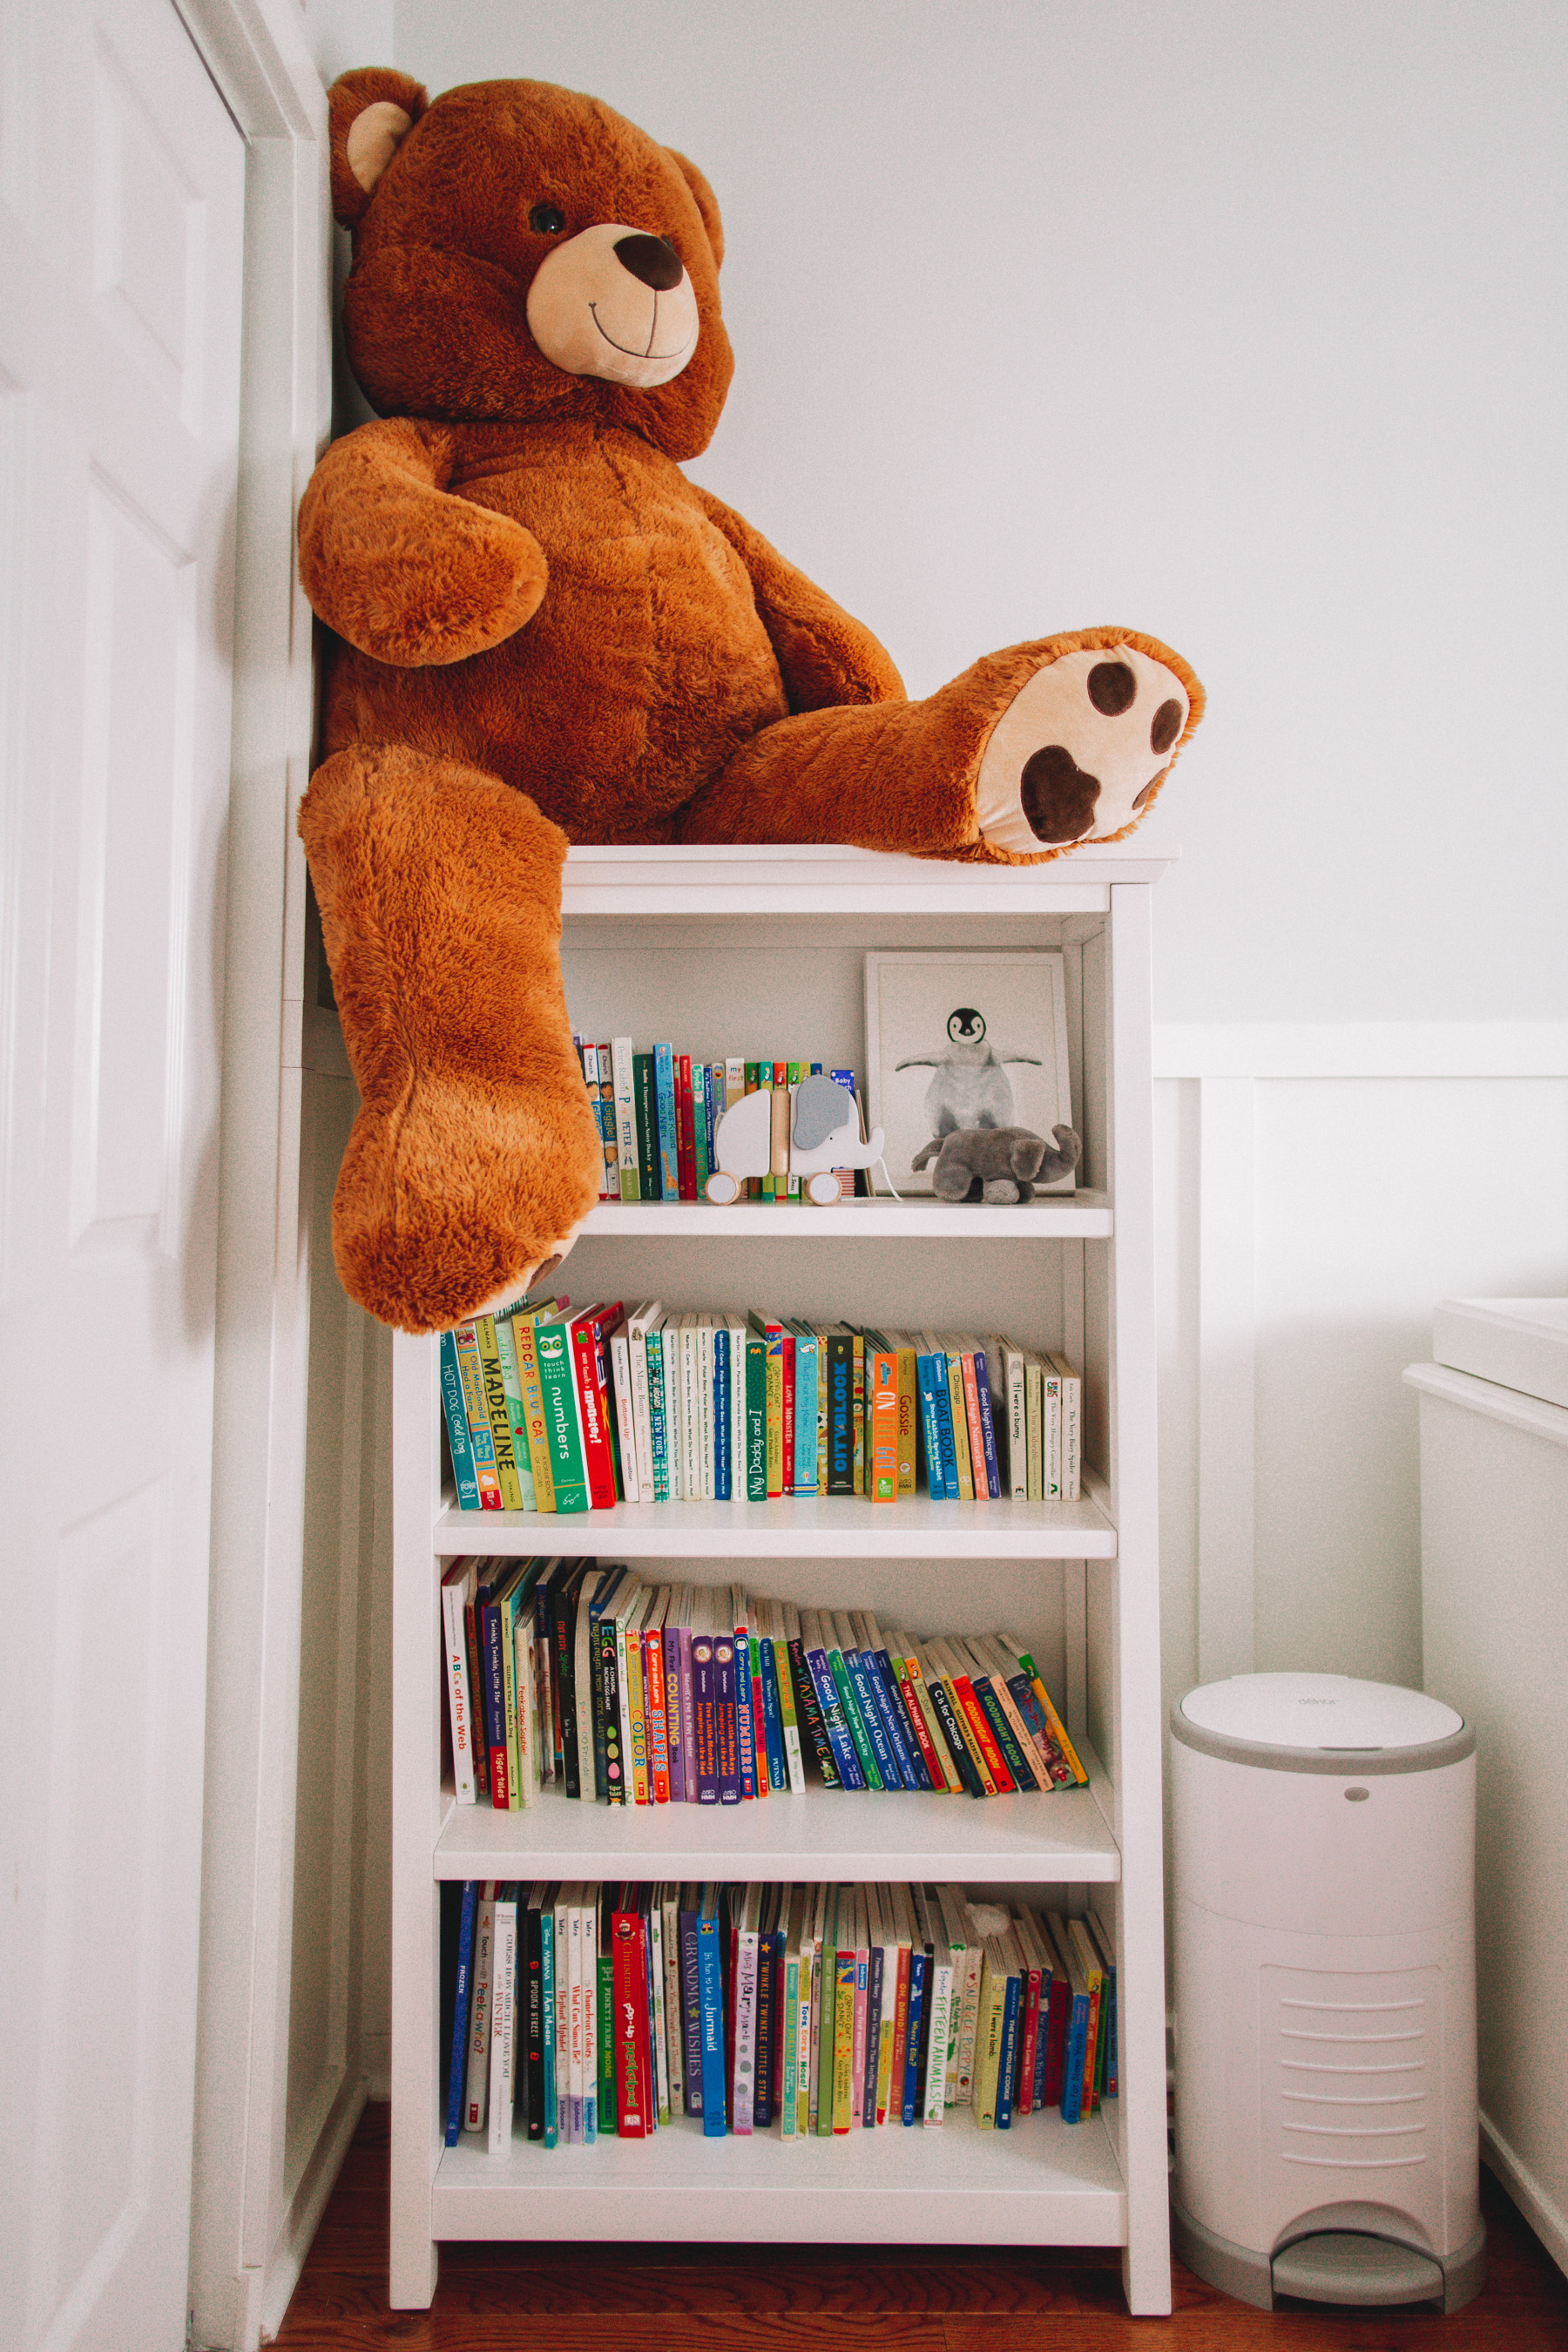 How to KonMari Kids' Rooms - books